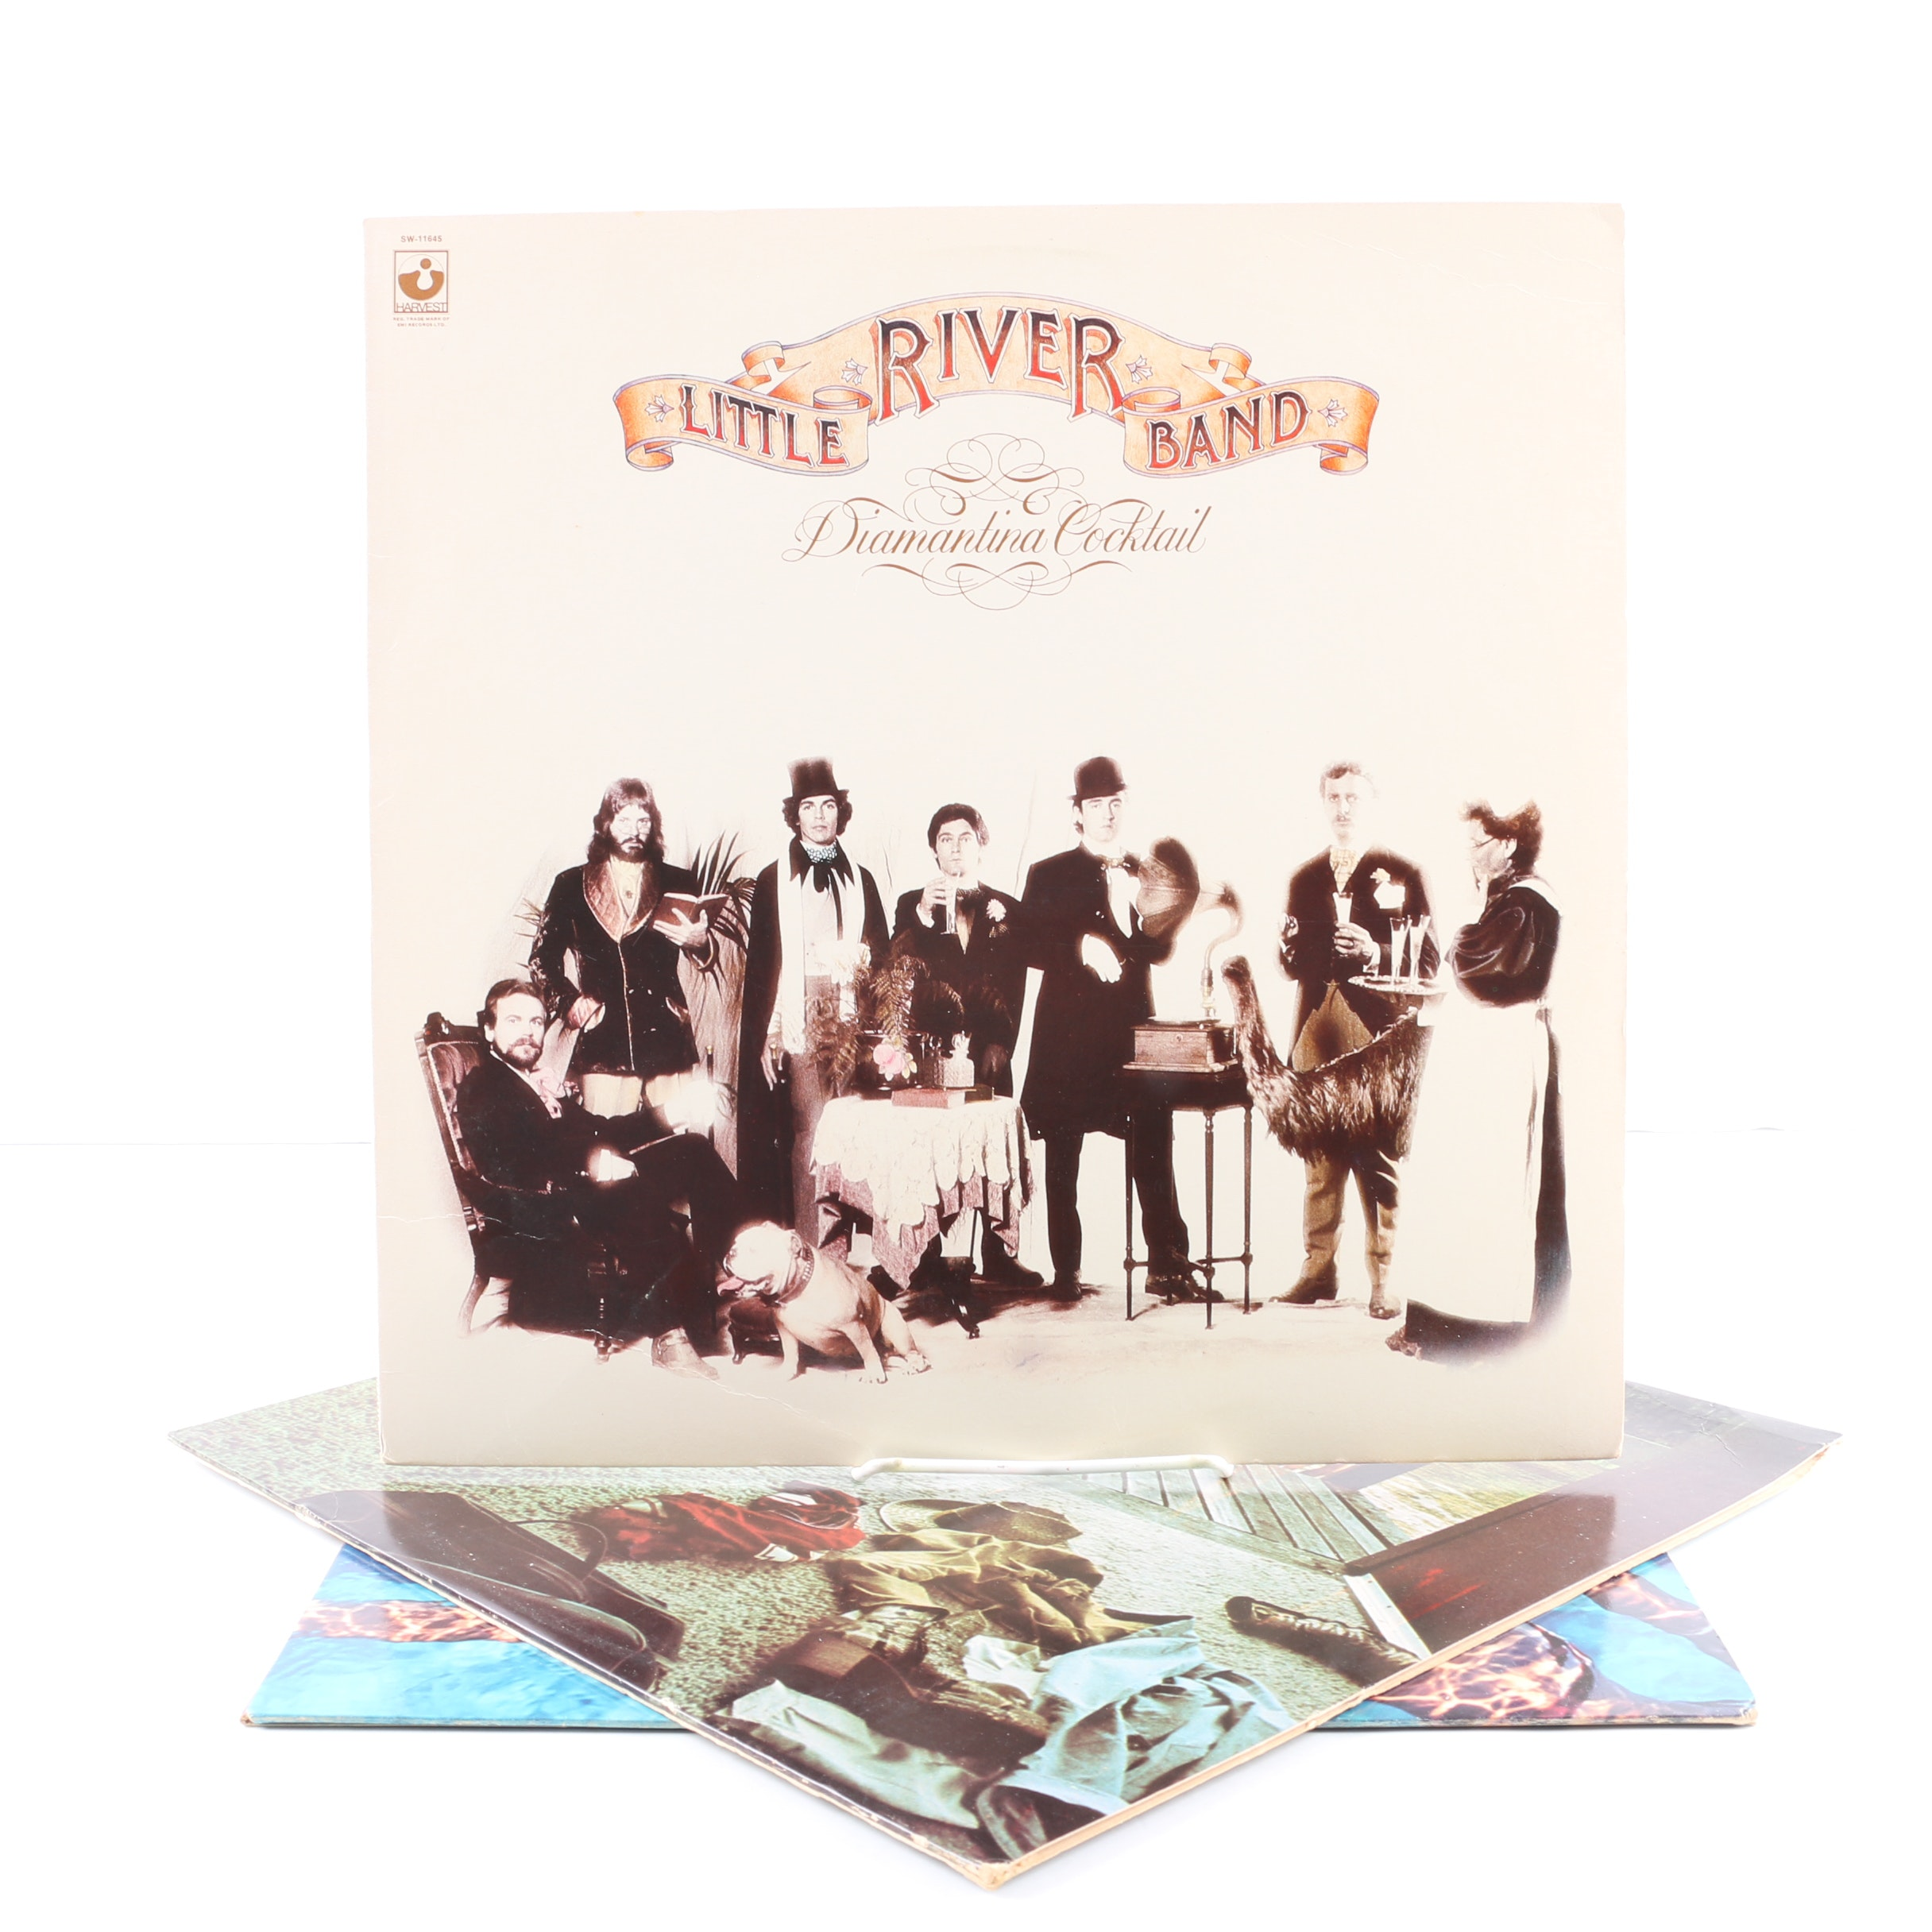 """Little River Band LPs Including """"Diamantina Cocktail"""""""